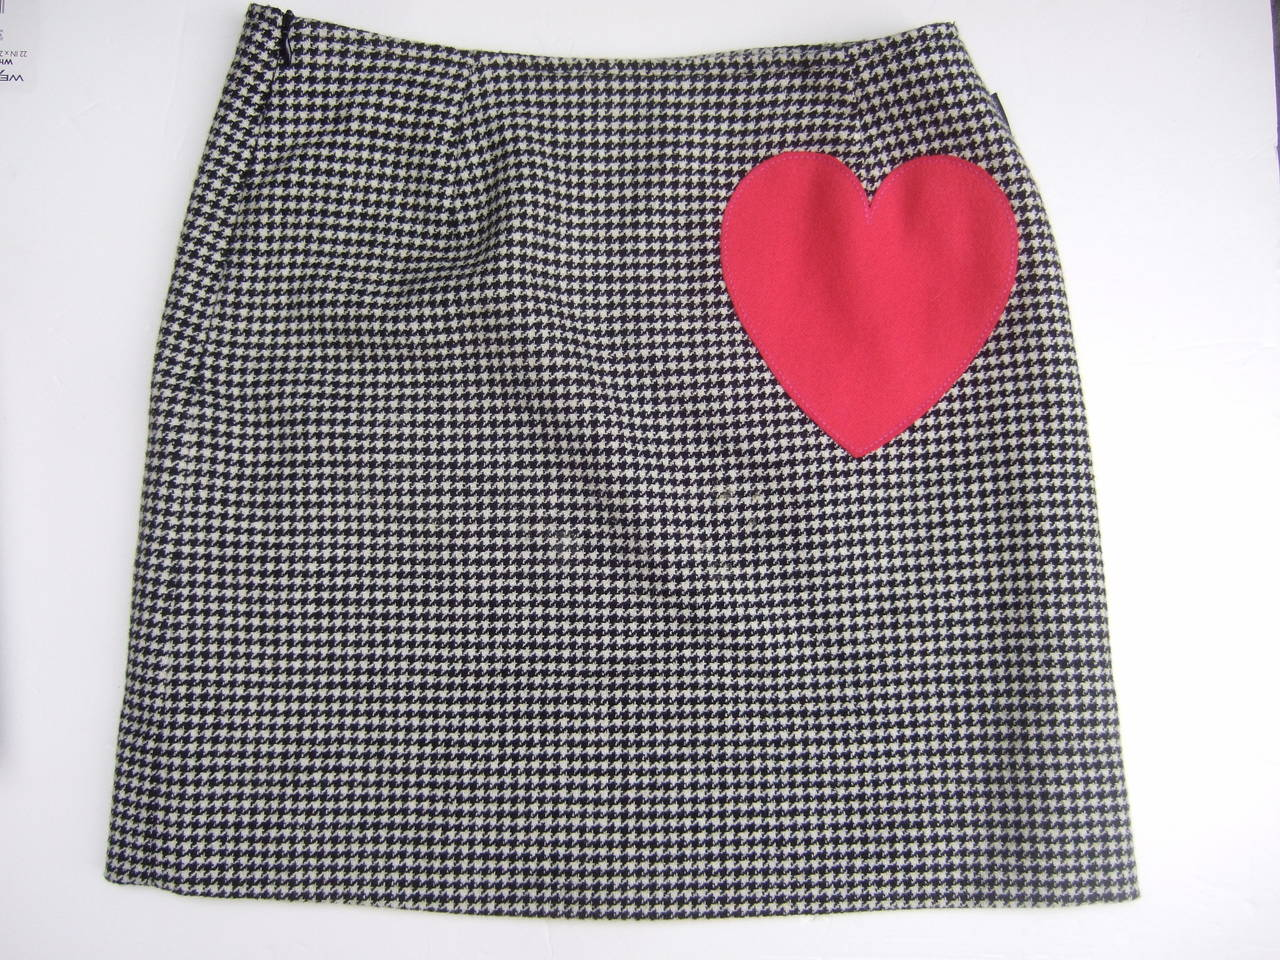 Moschino Mod Op Art Lolita Hounds Tooth Wool Skirt US Size 8 Made in Italy For Sale 1